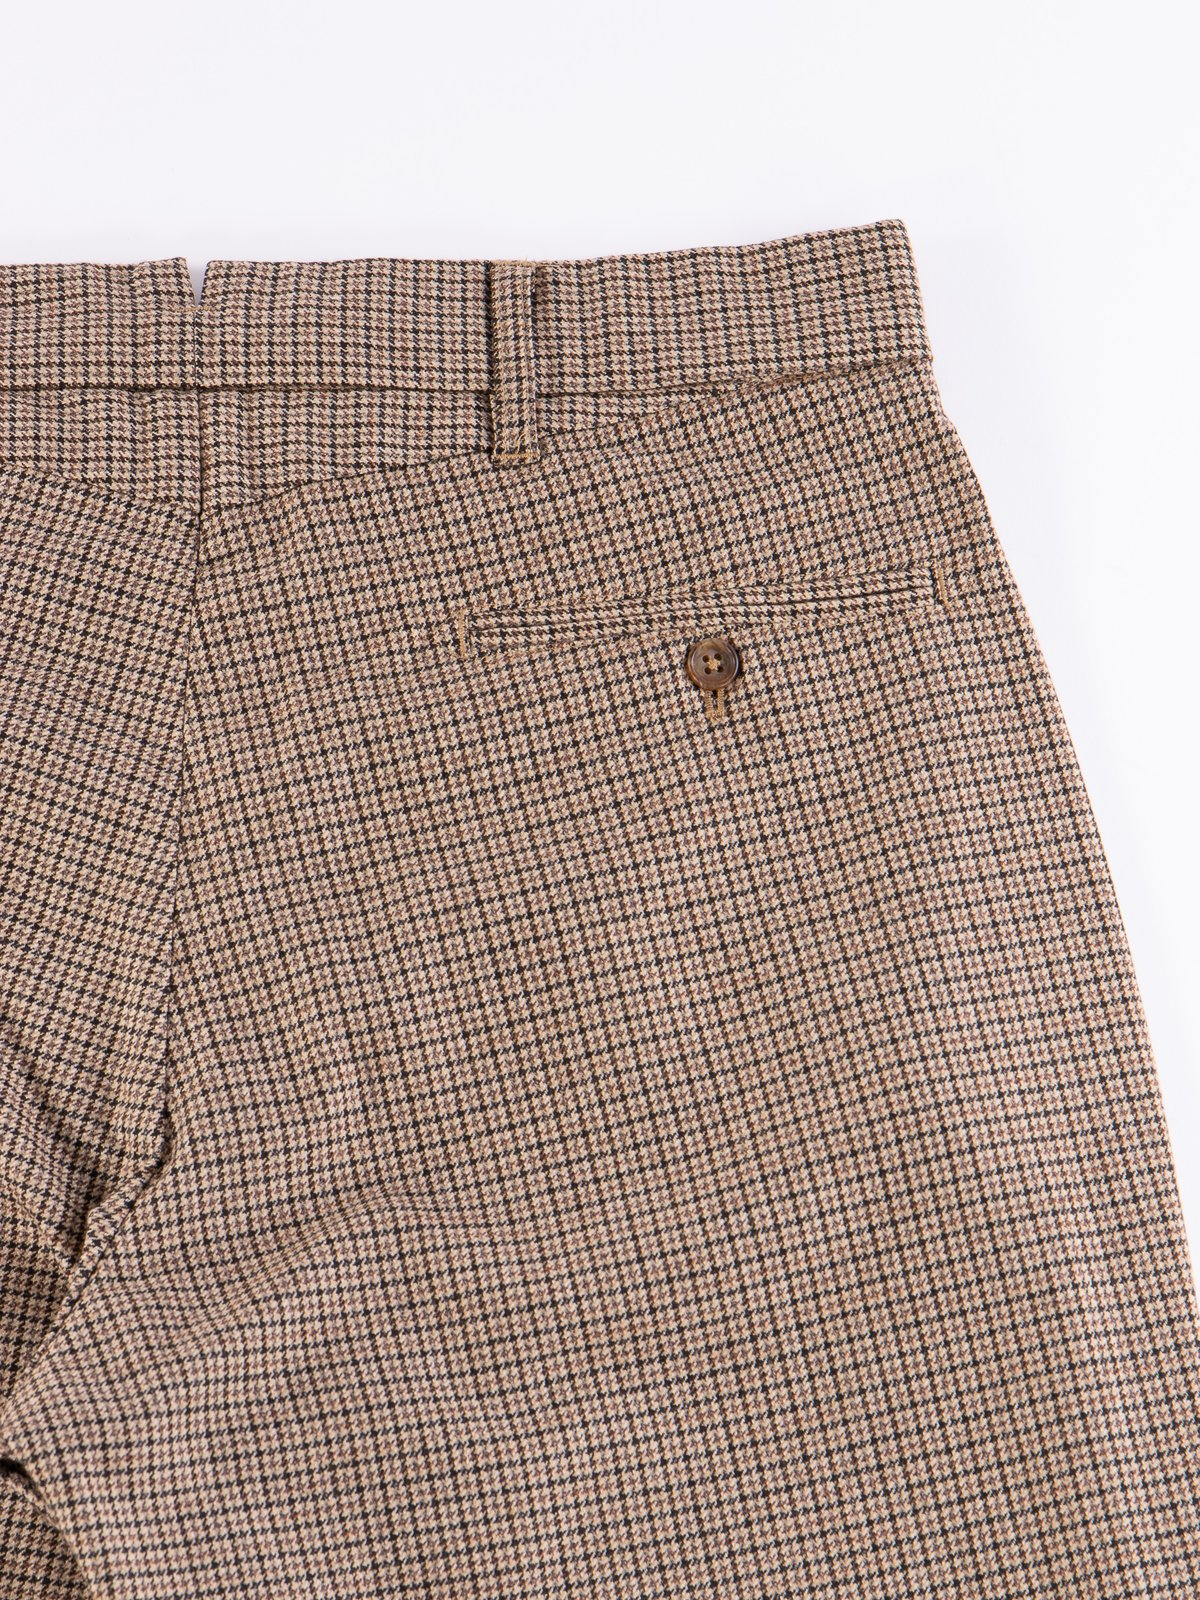 Brown Wool Poly Gunclub Check Andover Pant - Image 6